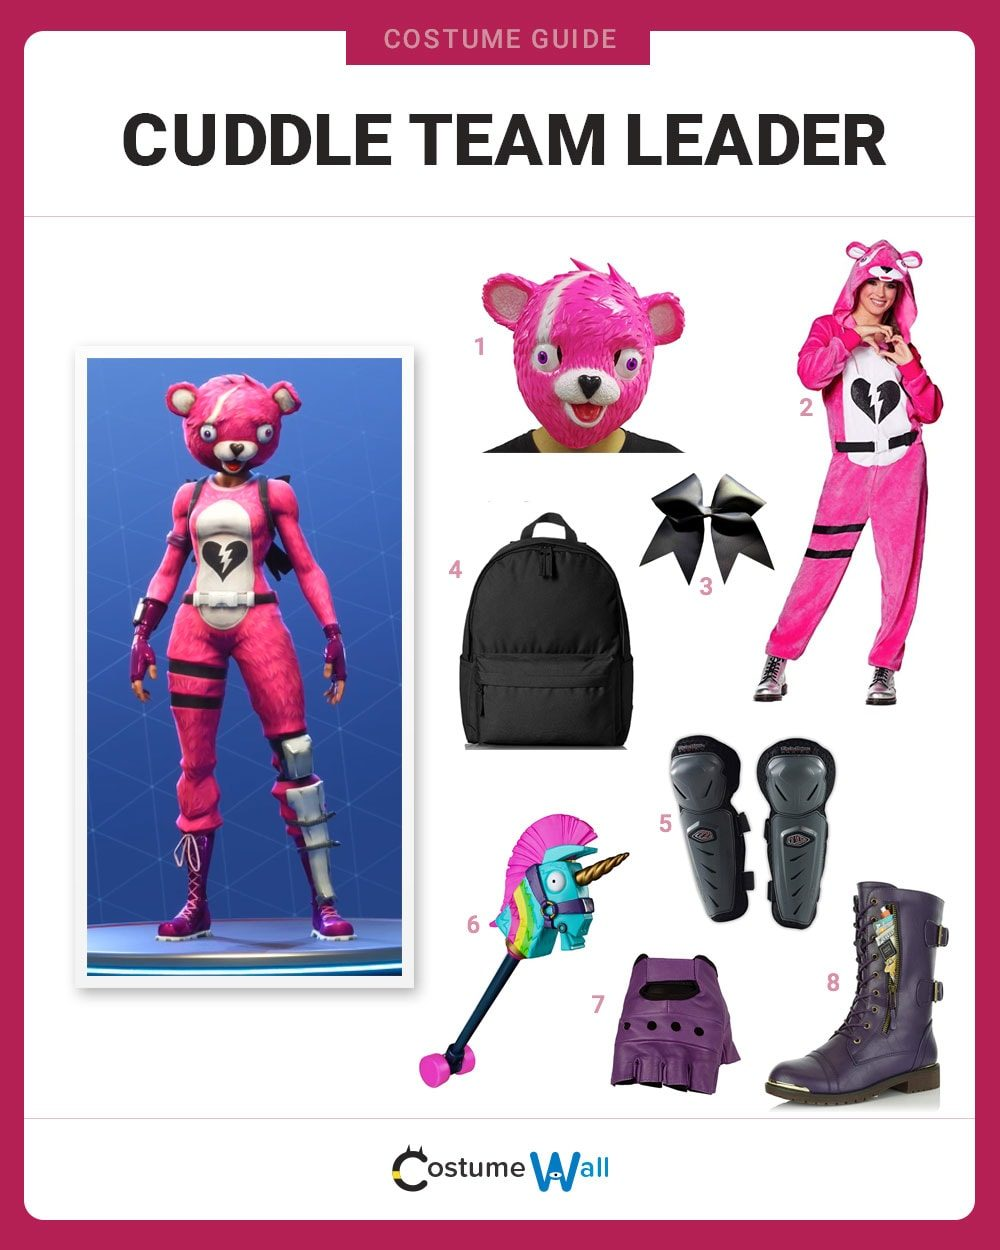 Cuddle Team Leader Costume Guide